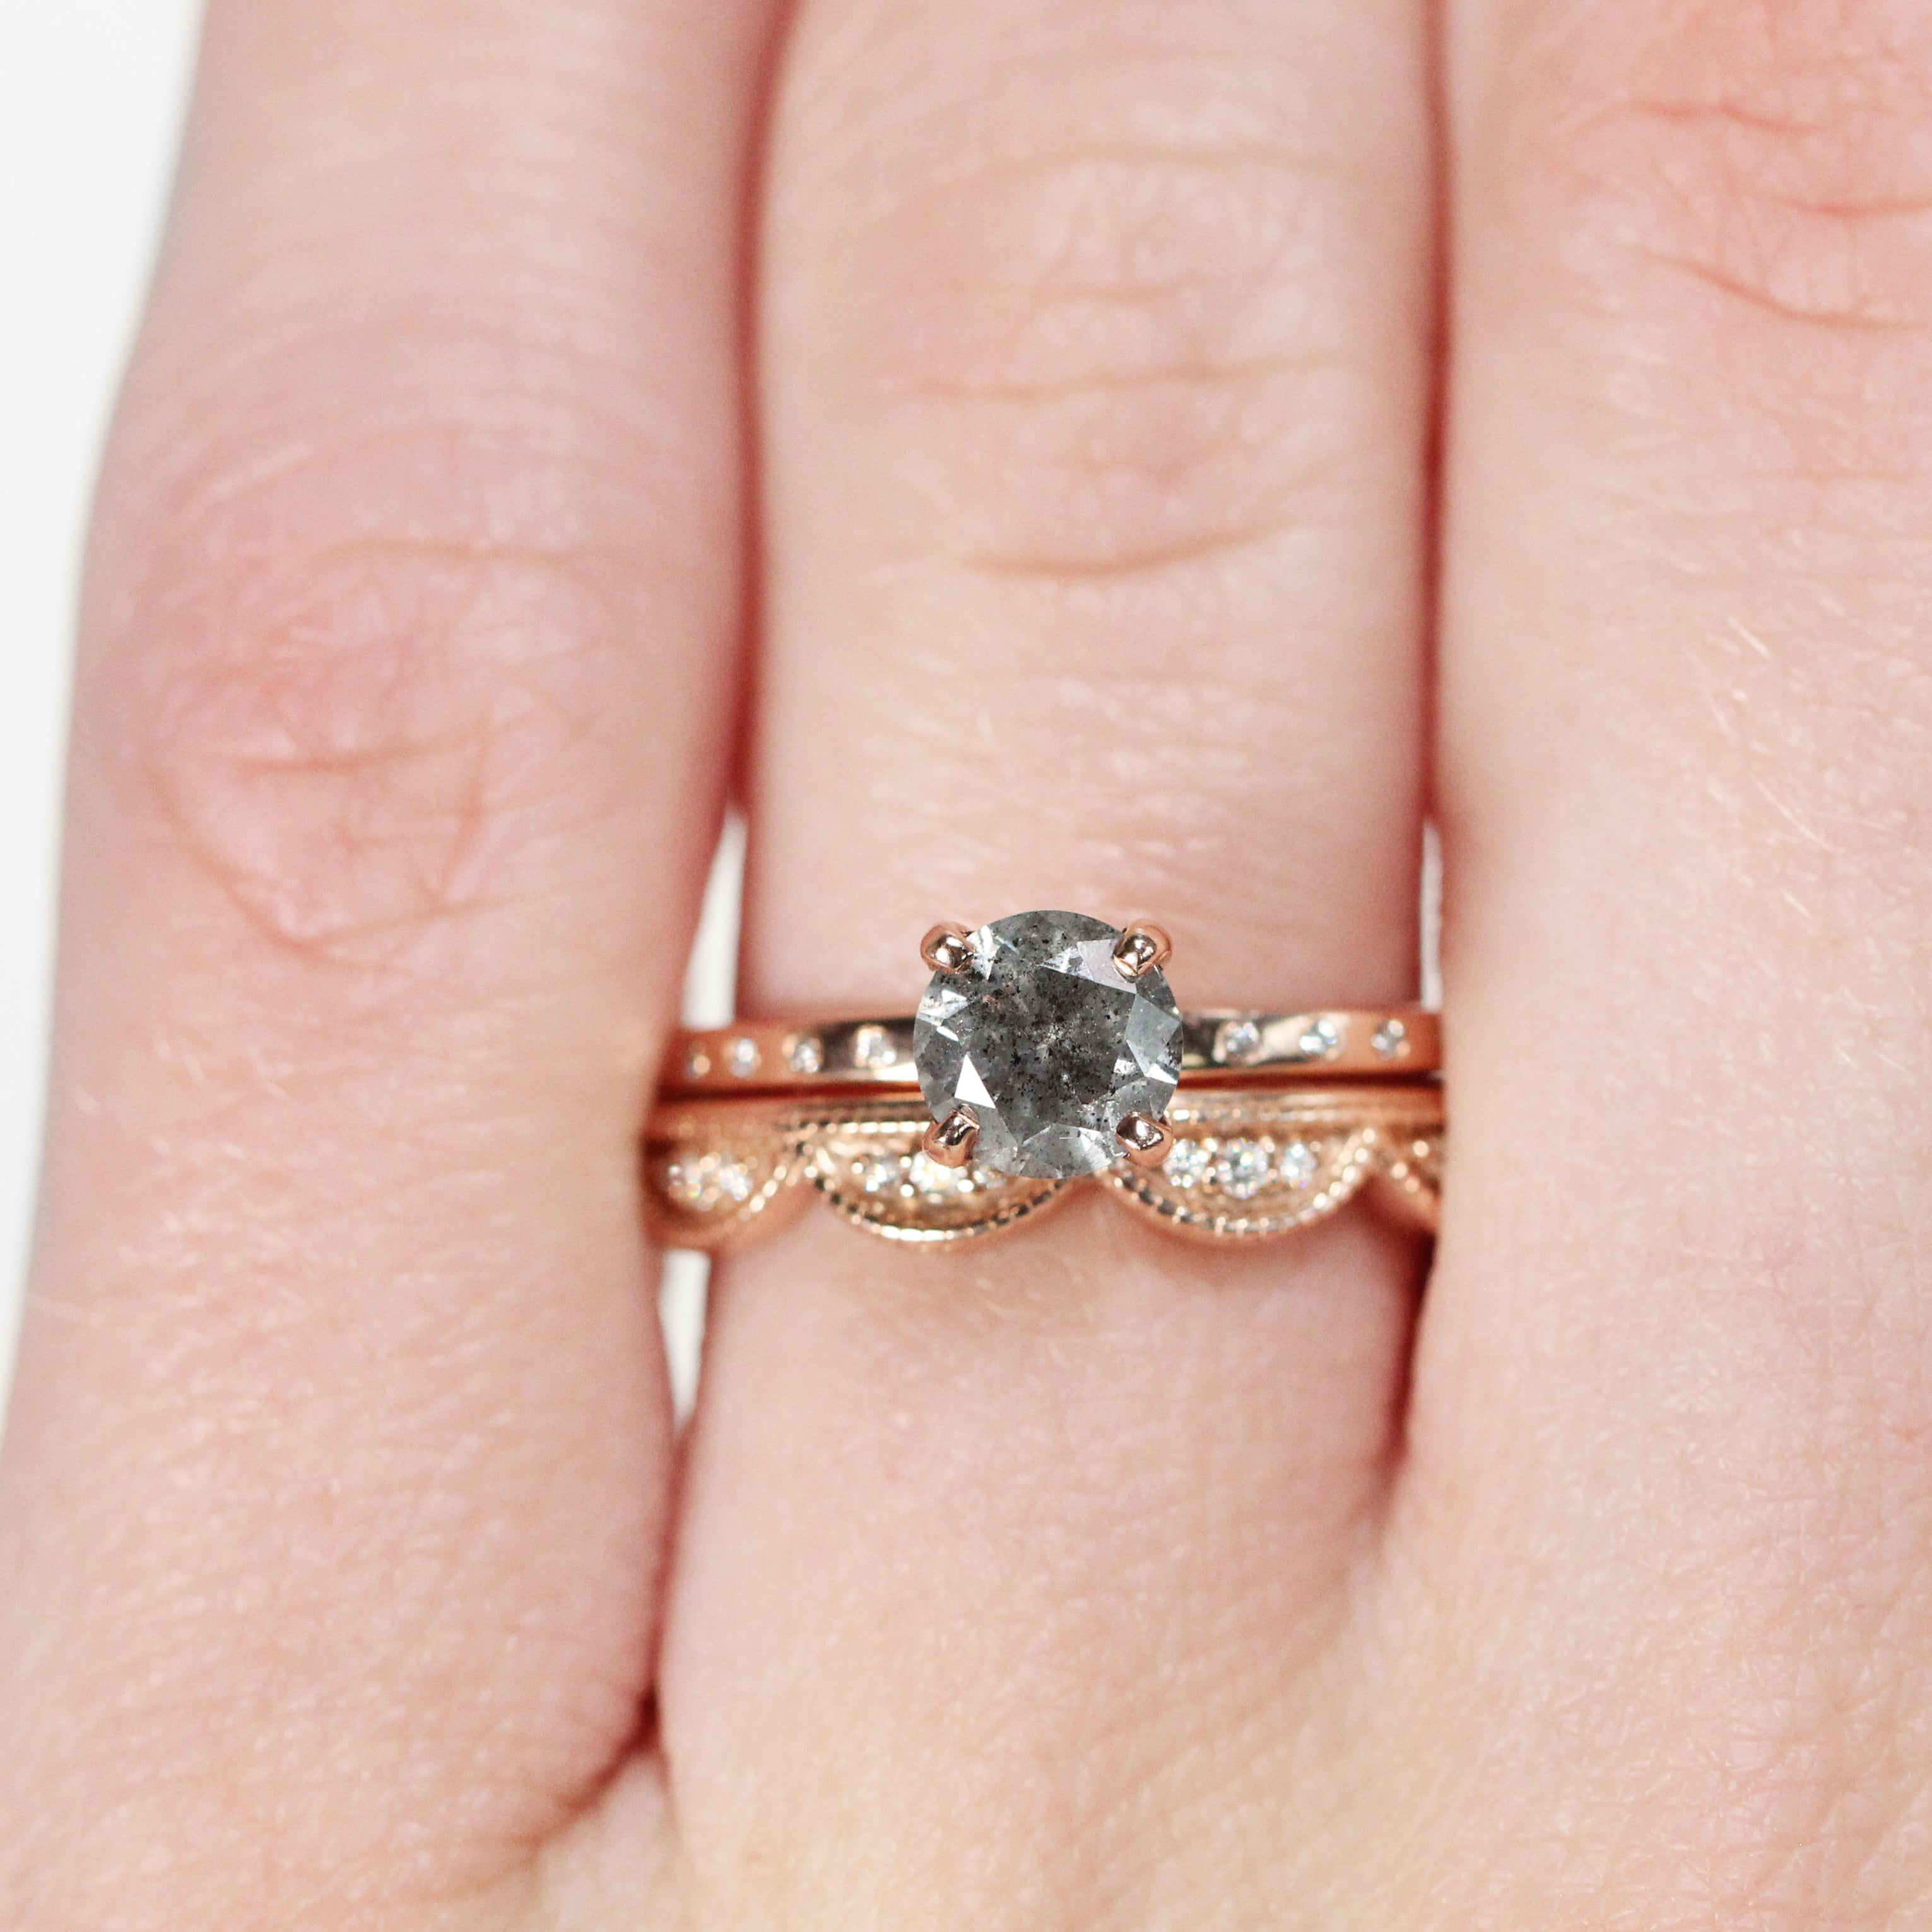 Heath Ring with an .83 ct Celestial Diamond in 14k Rose Gold - Ready to Size and Ship - Midwinter Co. Alternative Bridal Rings and Modern Fine Jewelry